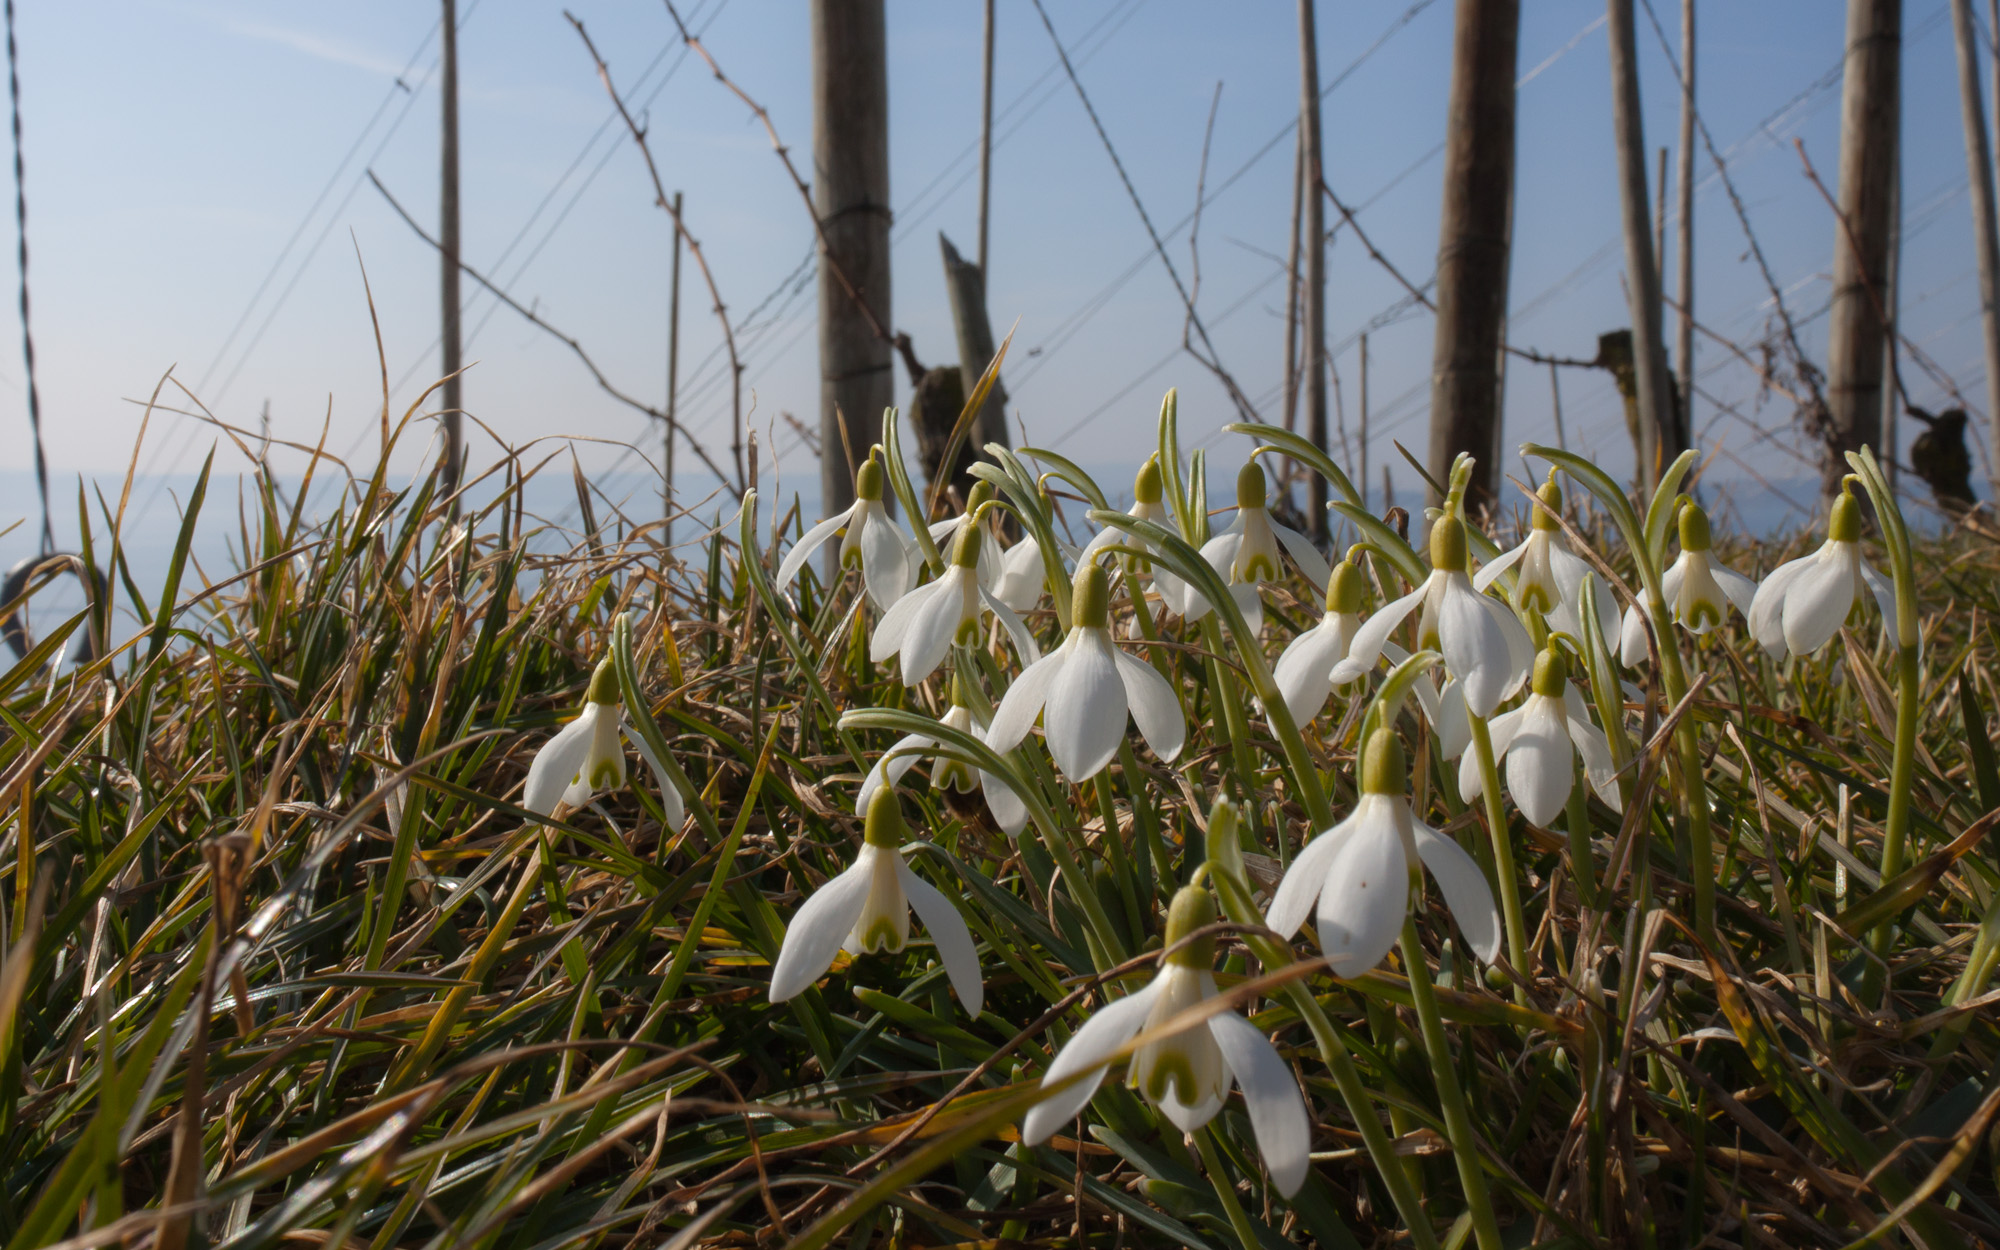 Snowdrops - Spring creeping up on a winter vineyard